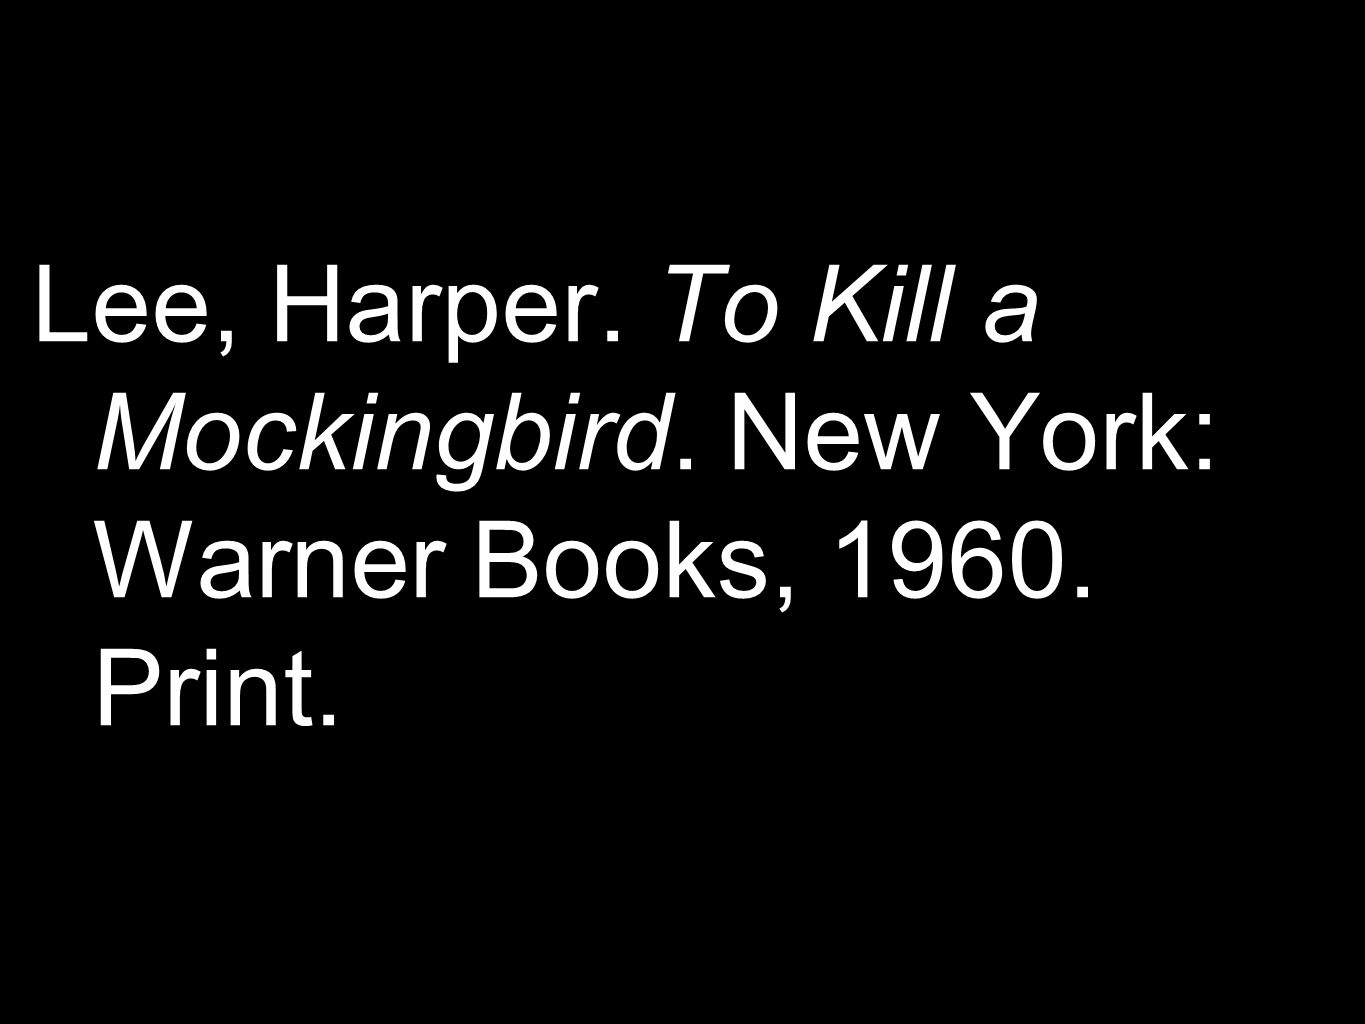 work cited for to kill a mockingbird